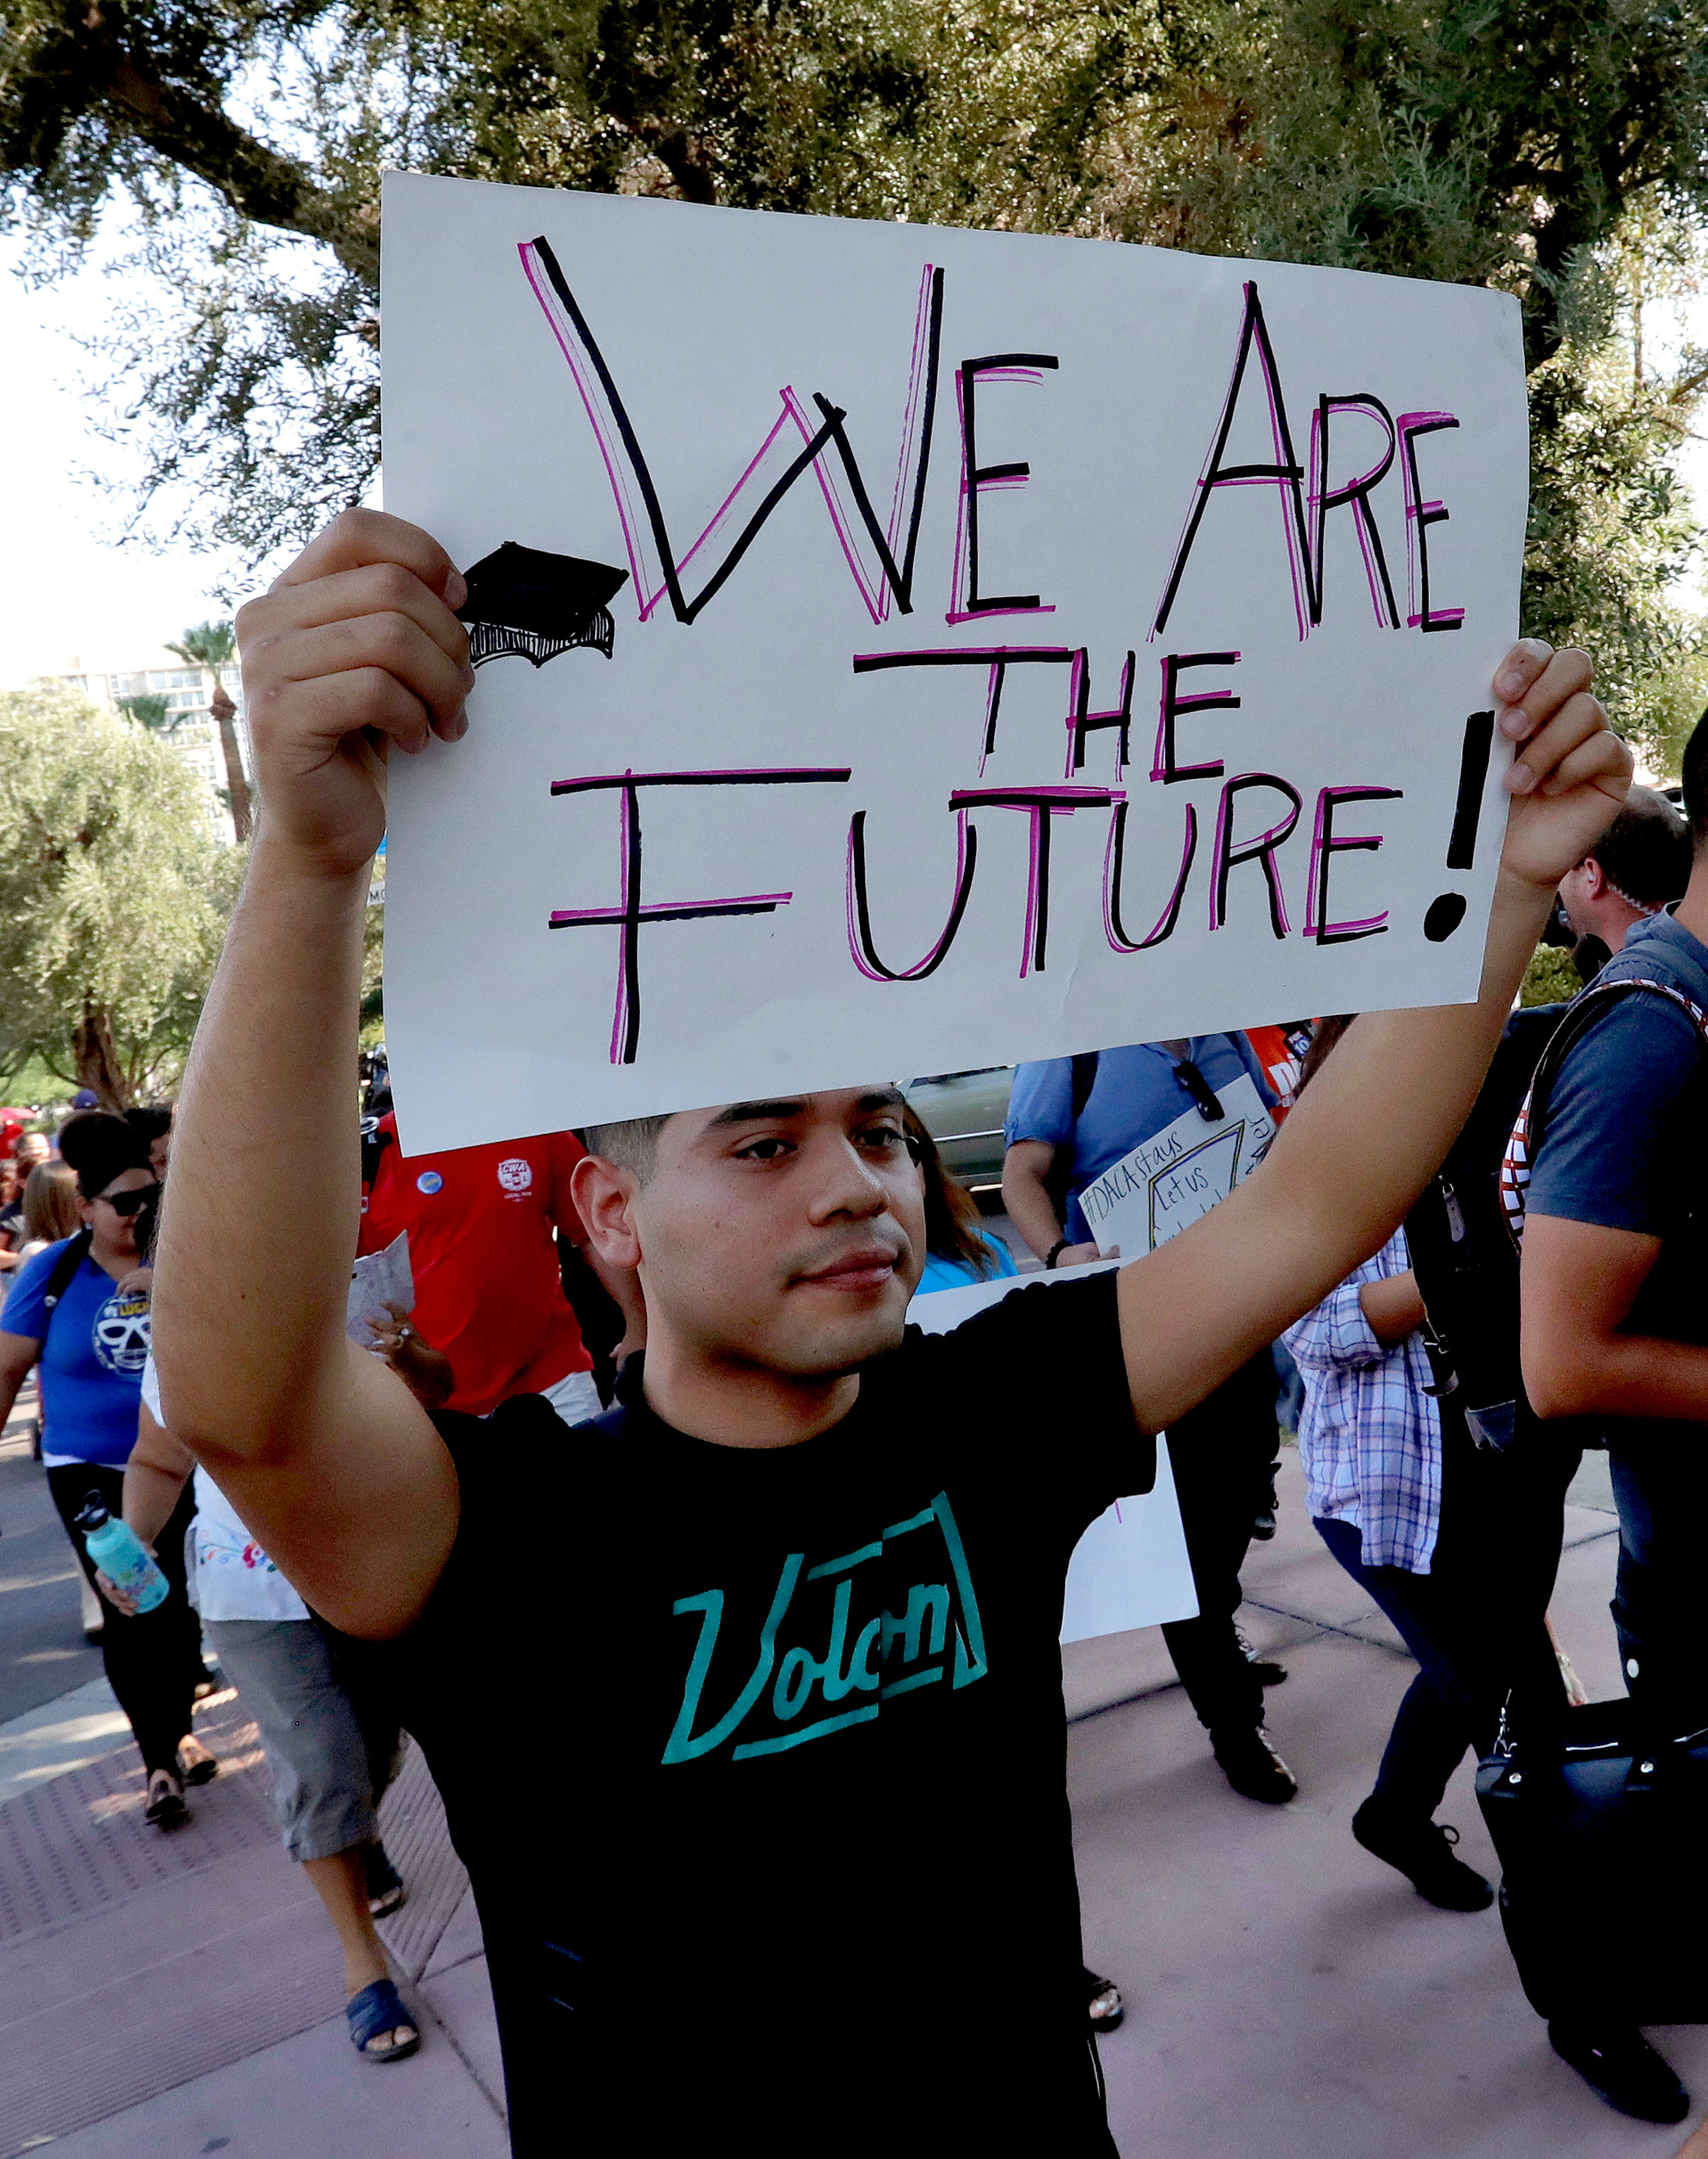 Deferred Action for Childhood Arrivals (DACA) supporters march to the Immigration and Customs Enforcement office to protest shortly after U.S. Attorney General Jeff Sessions' announcement that the Deferred Action for Childhood Arrivals (DACA), will be suspended with a six-month delay, Tuesday, Sept. 5, 2017, in Phoenix. President Donald Trump on Tuesday began dismantling the Deferred Action for Childhood Arrivals, or DACA, program, the government program protecting hundreds of thousands of young immigrants who were brought into the country illegally as children. (AP Photo/Matt York)